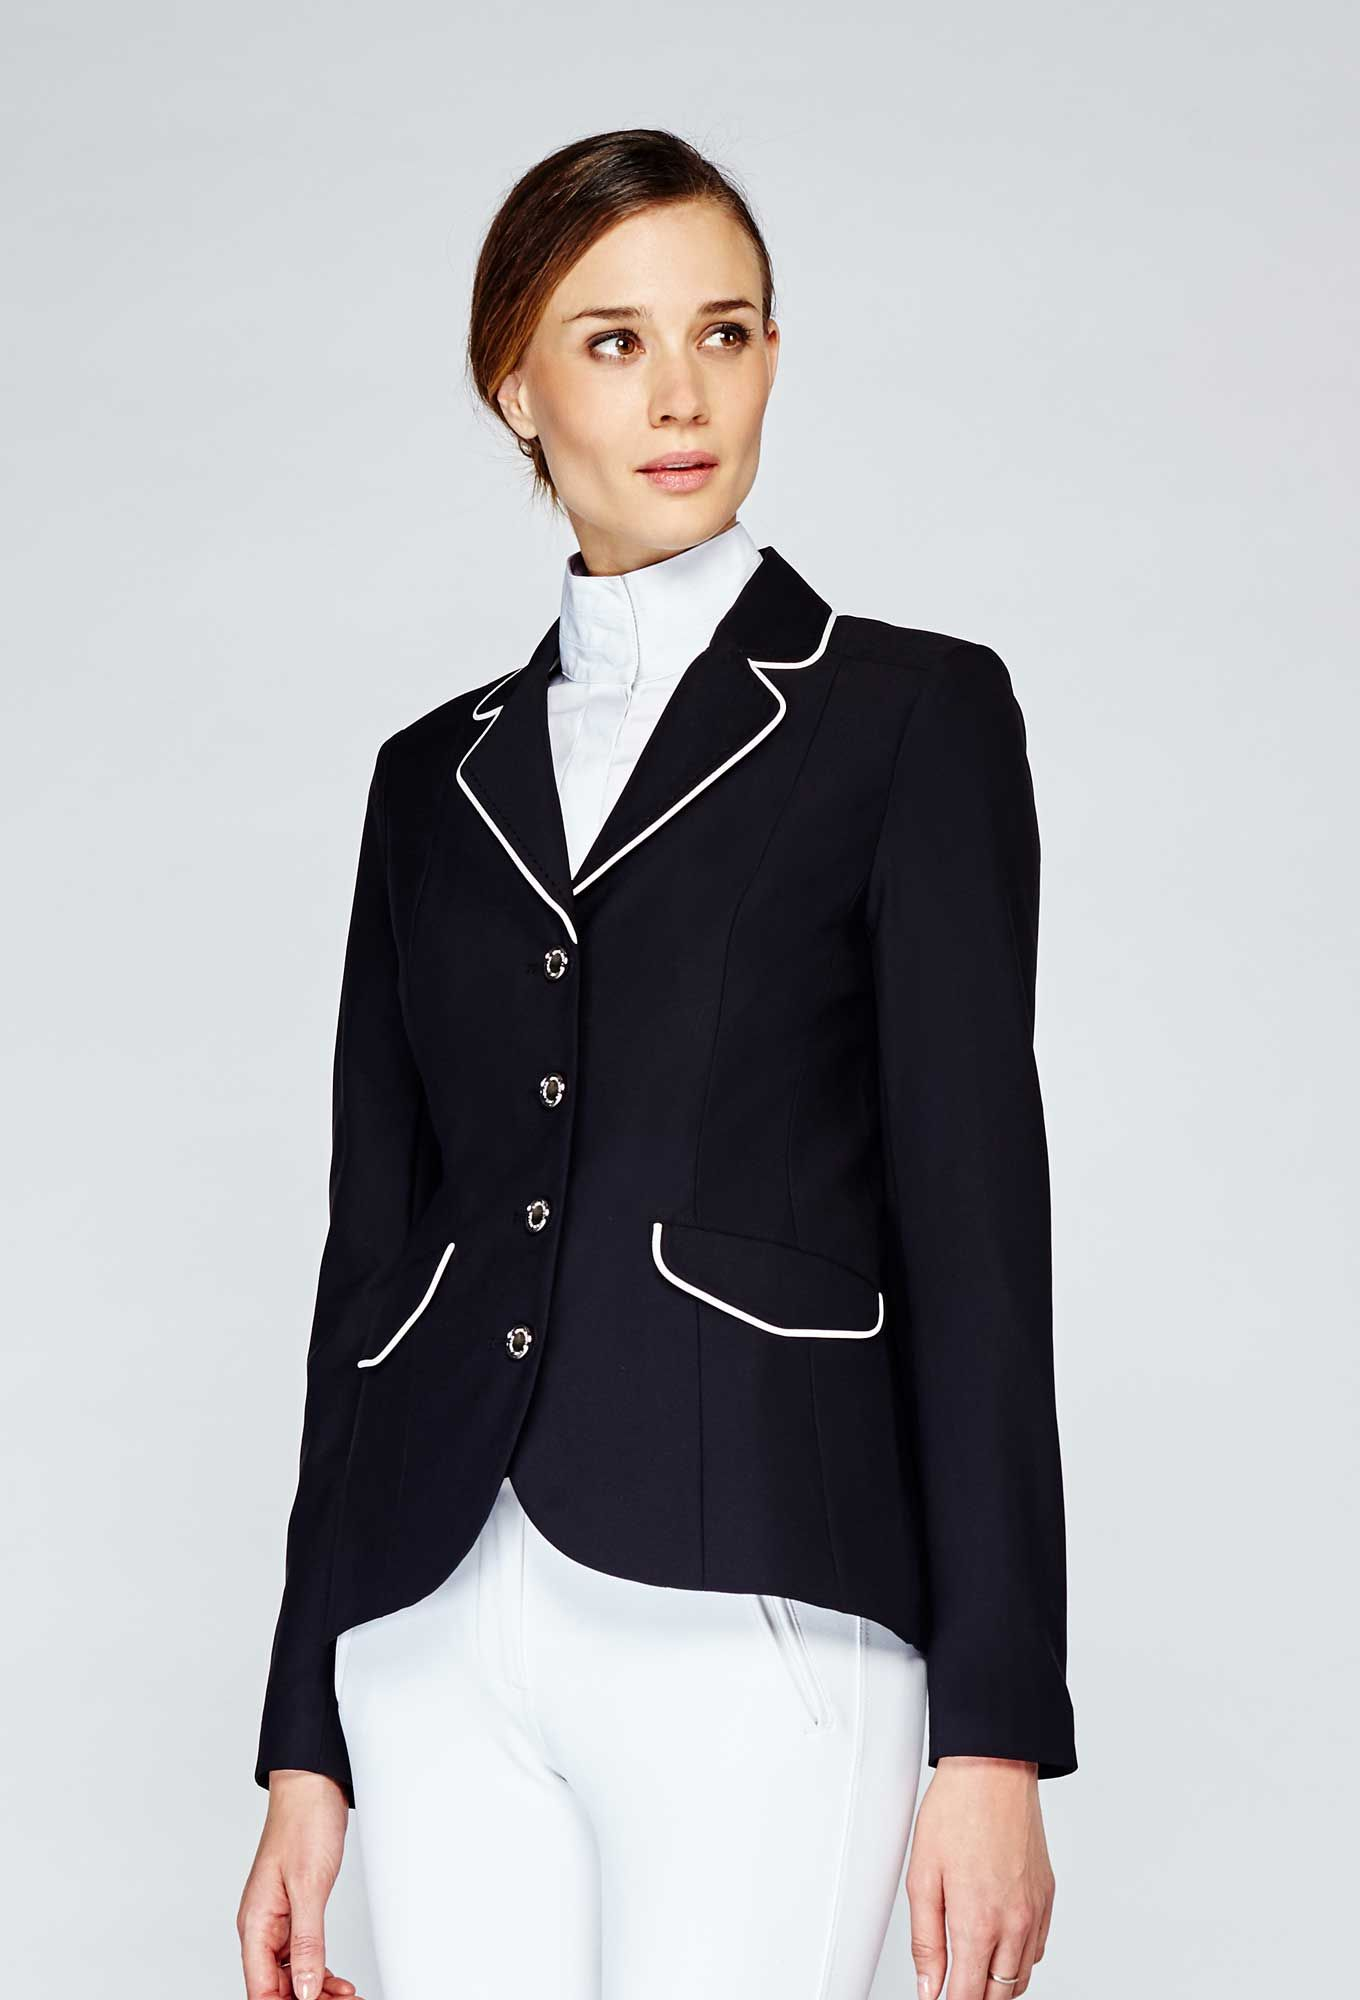 London Show Jacket Show Jackets Equestrian Outfits Jackets [ 2000 x 1360 Pixel ]